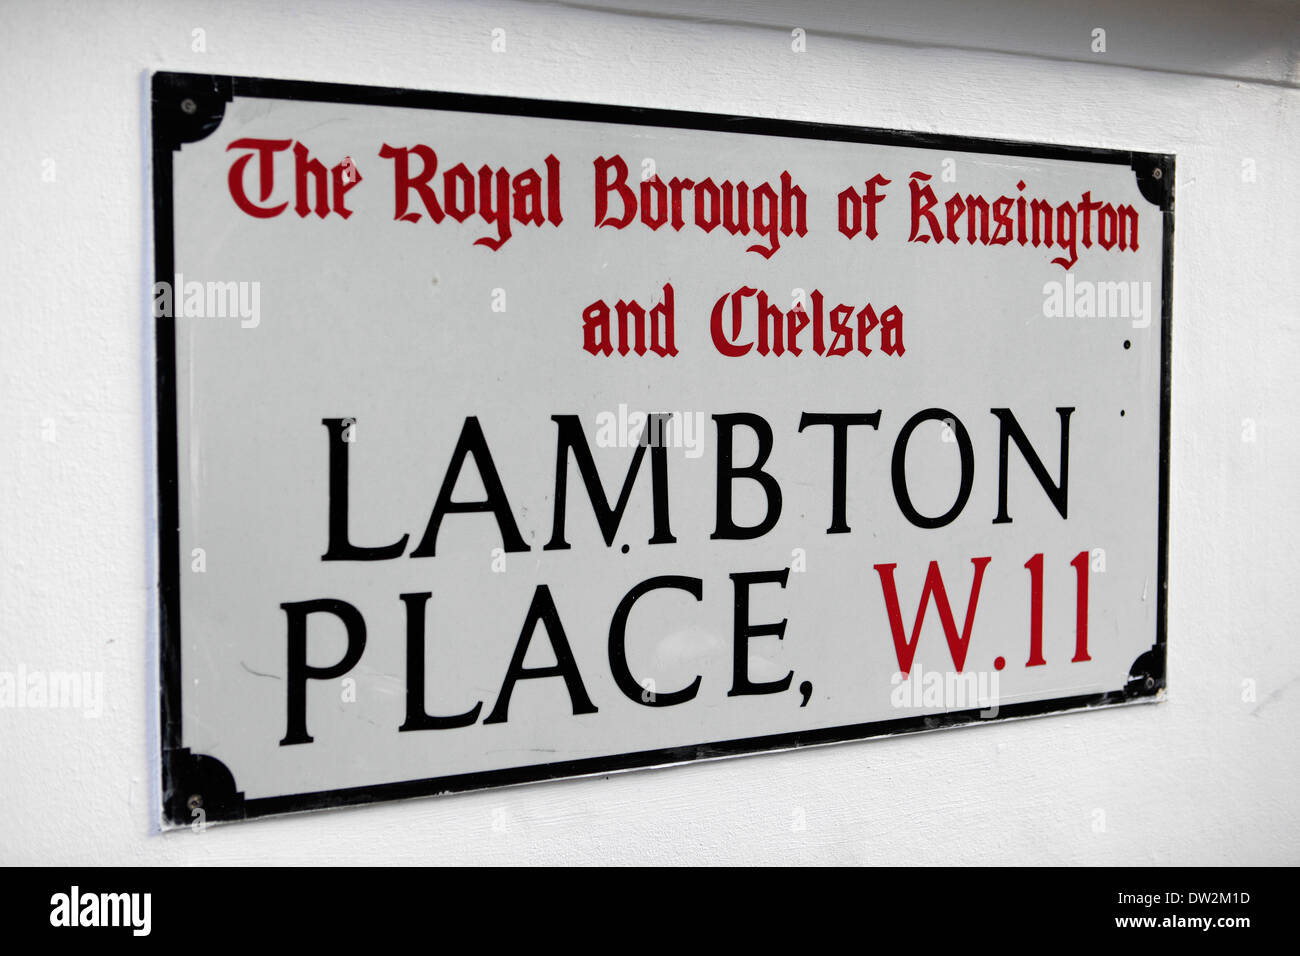 united kingdom london royal borough of kensington and chelsea lambton place w11 street sign - Stock Image